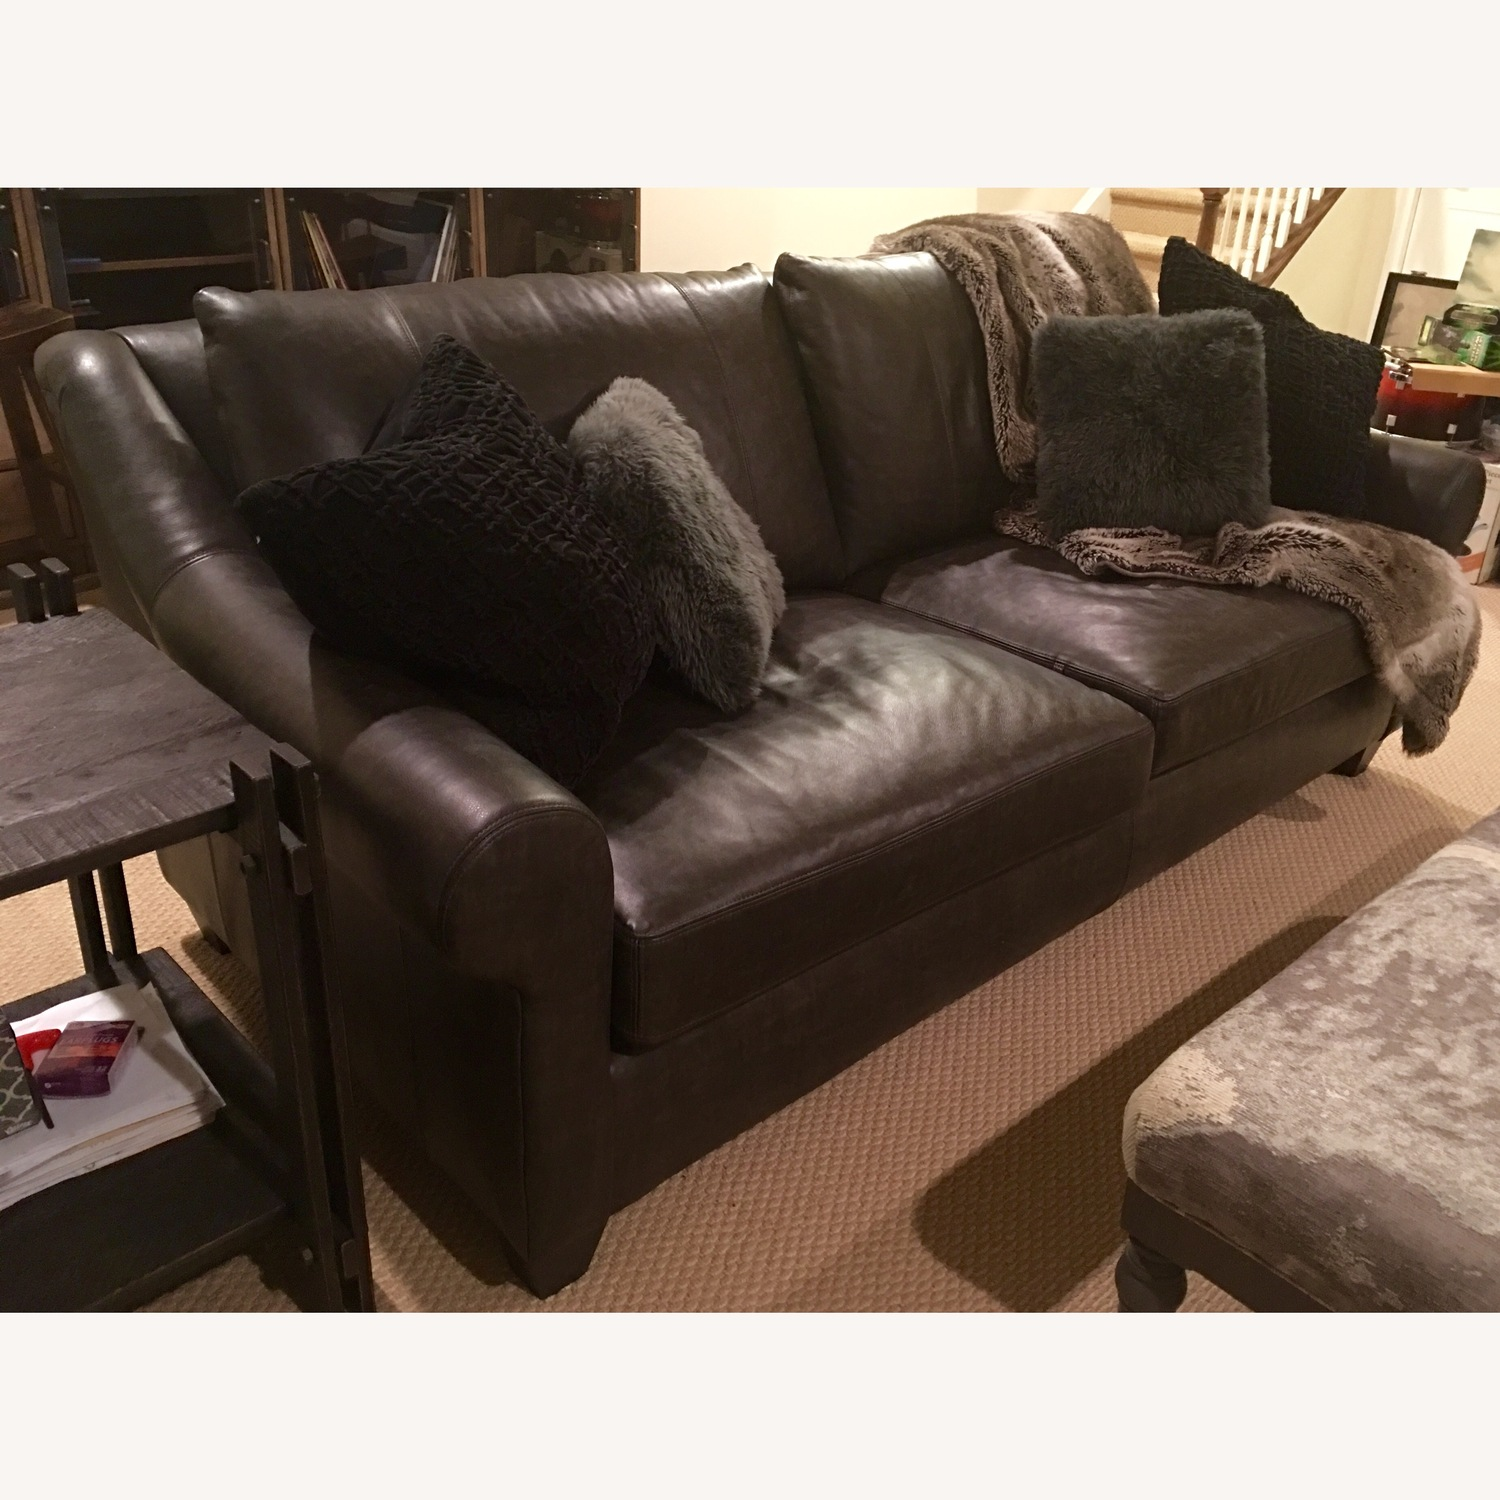 Arhaus Rockway Leather Sofa - image-8